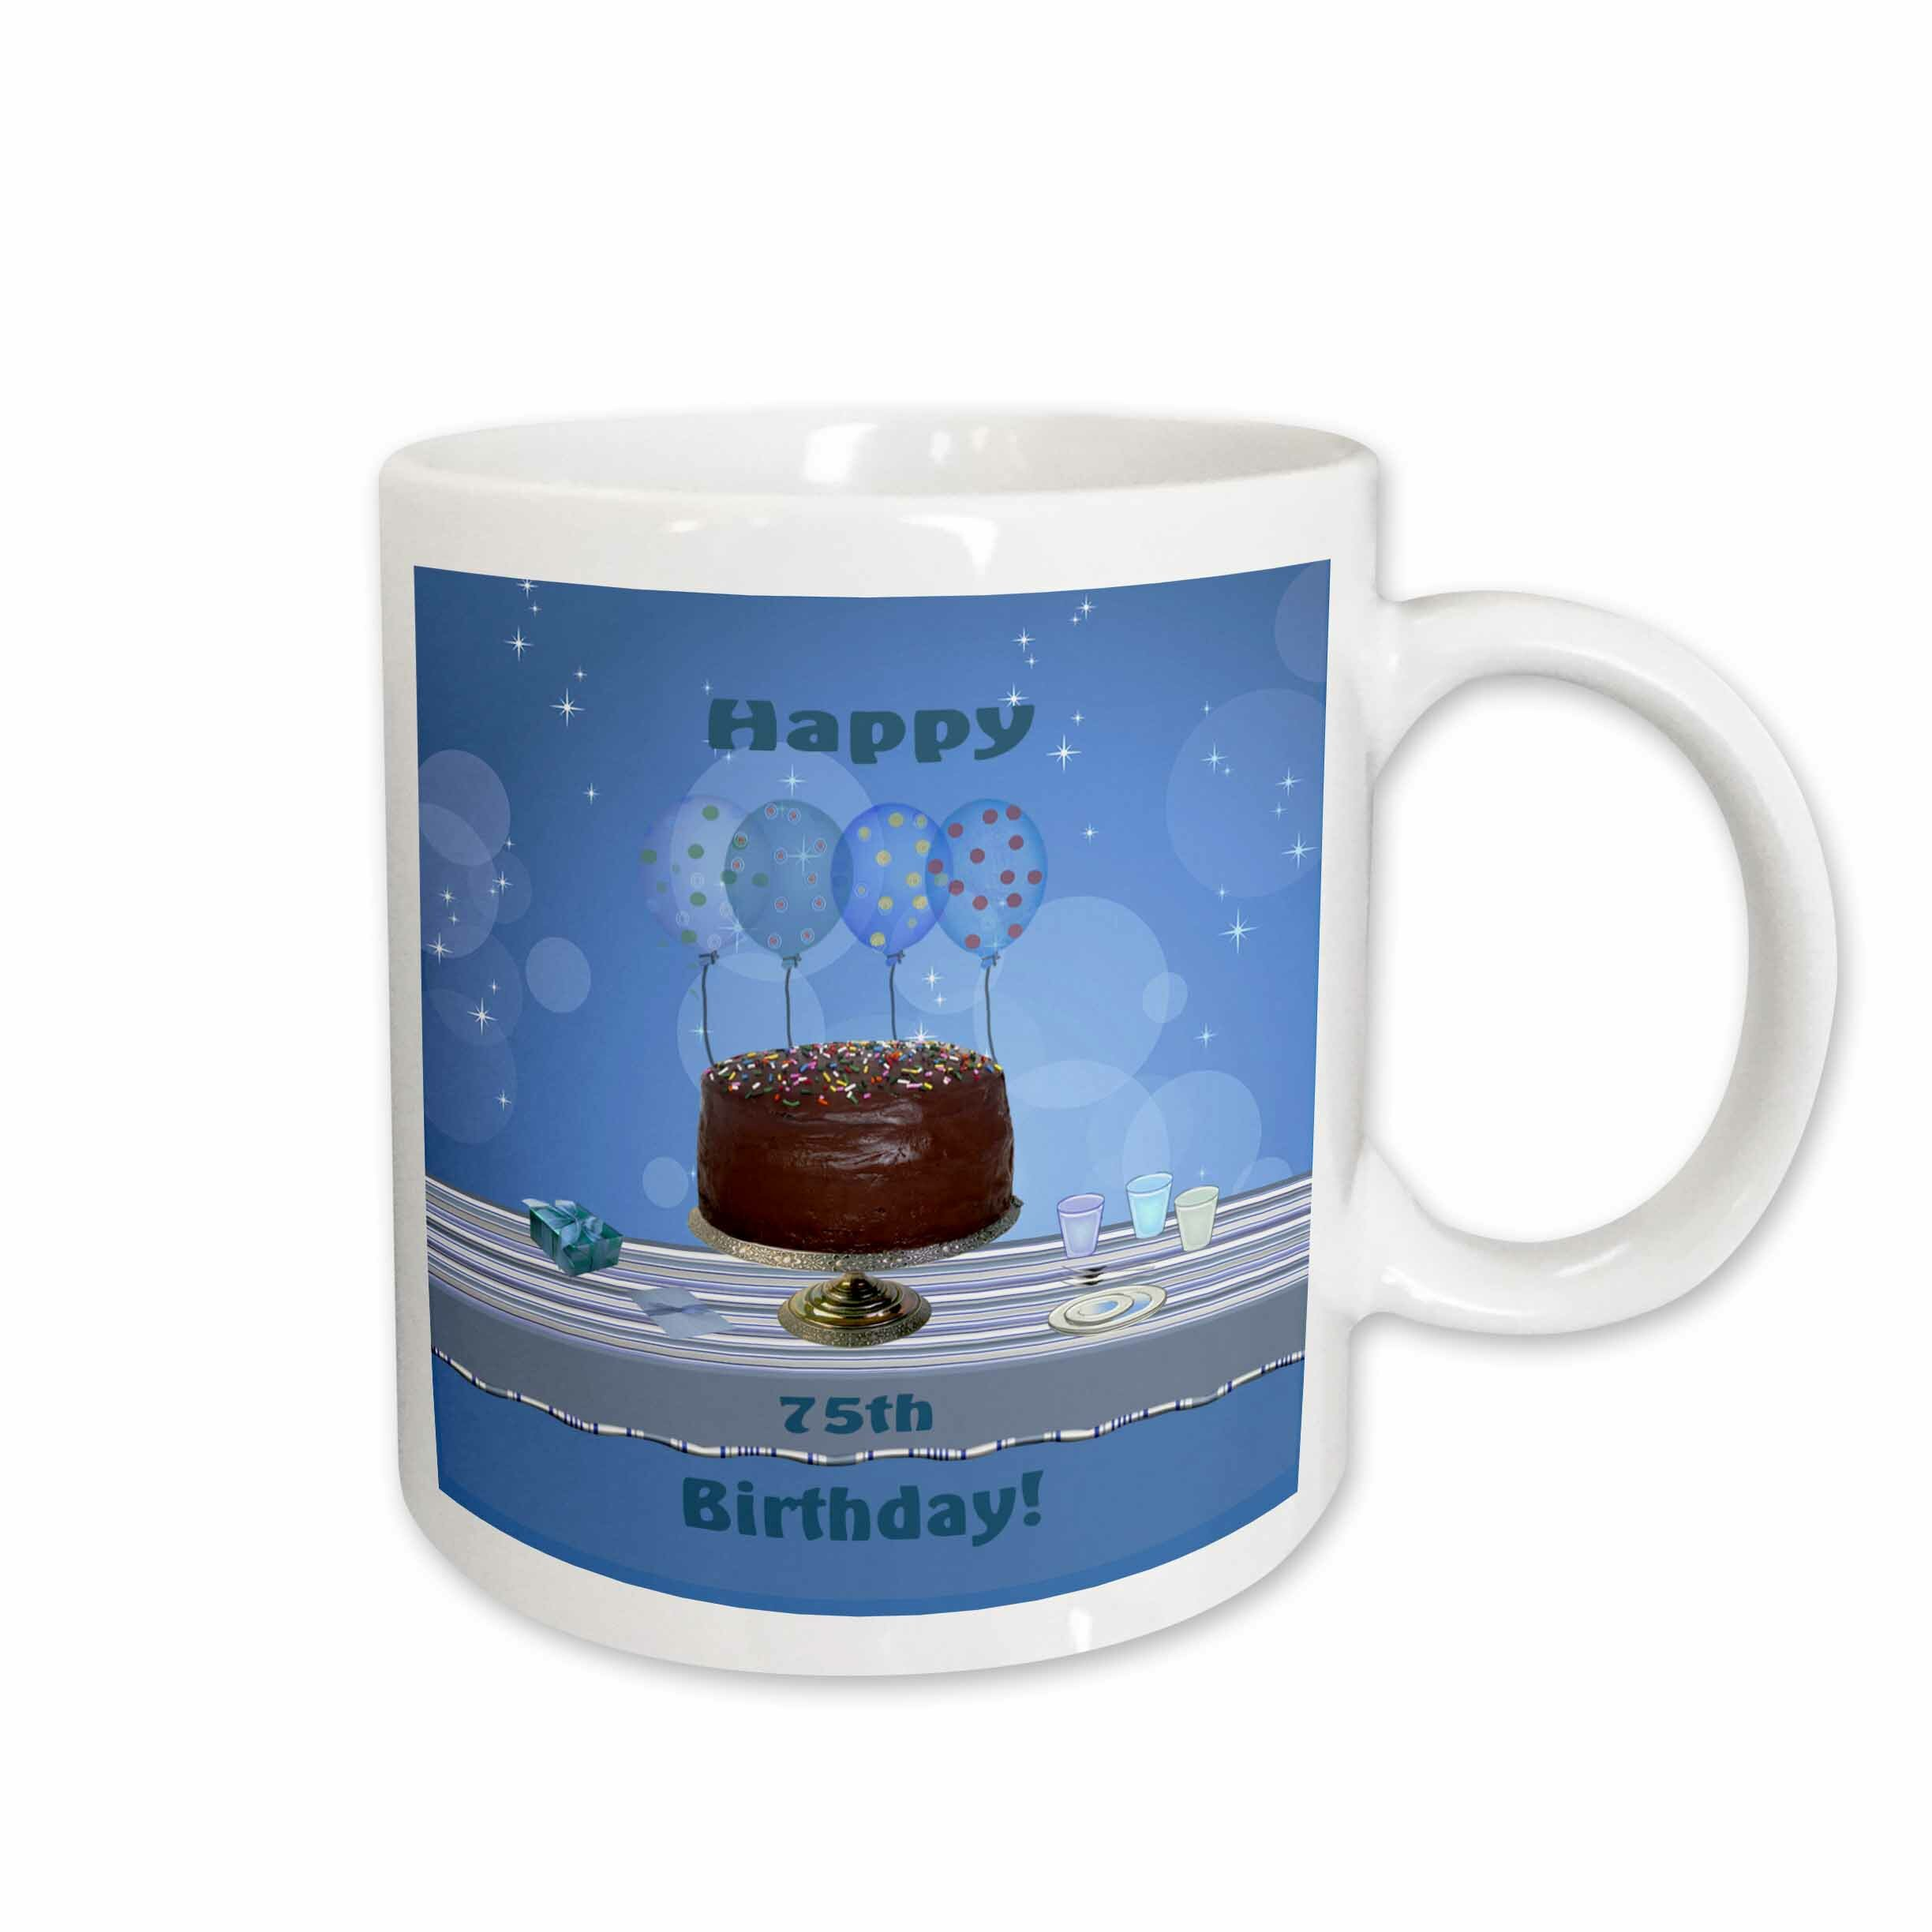 East Urban Home 75th Birthday Party With Chocolate Cake And Balloons Coffee Mug